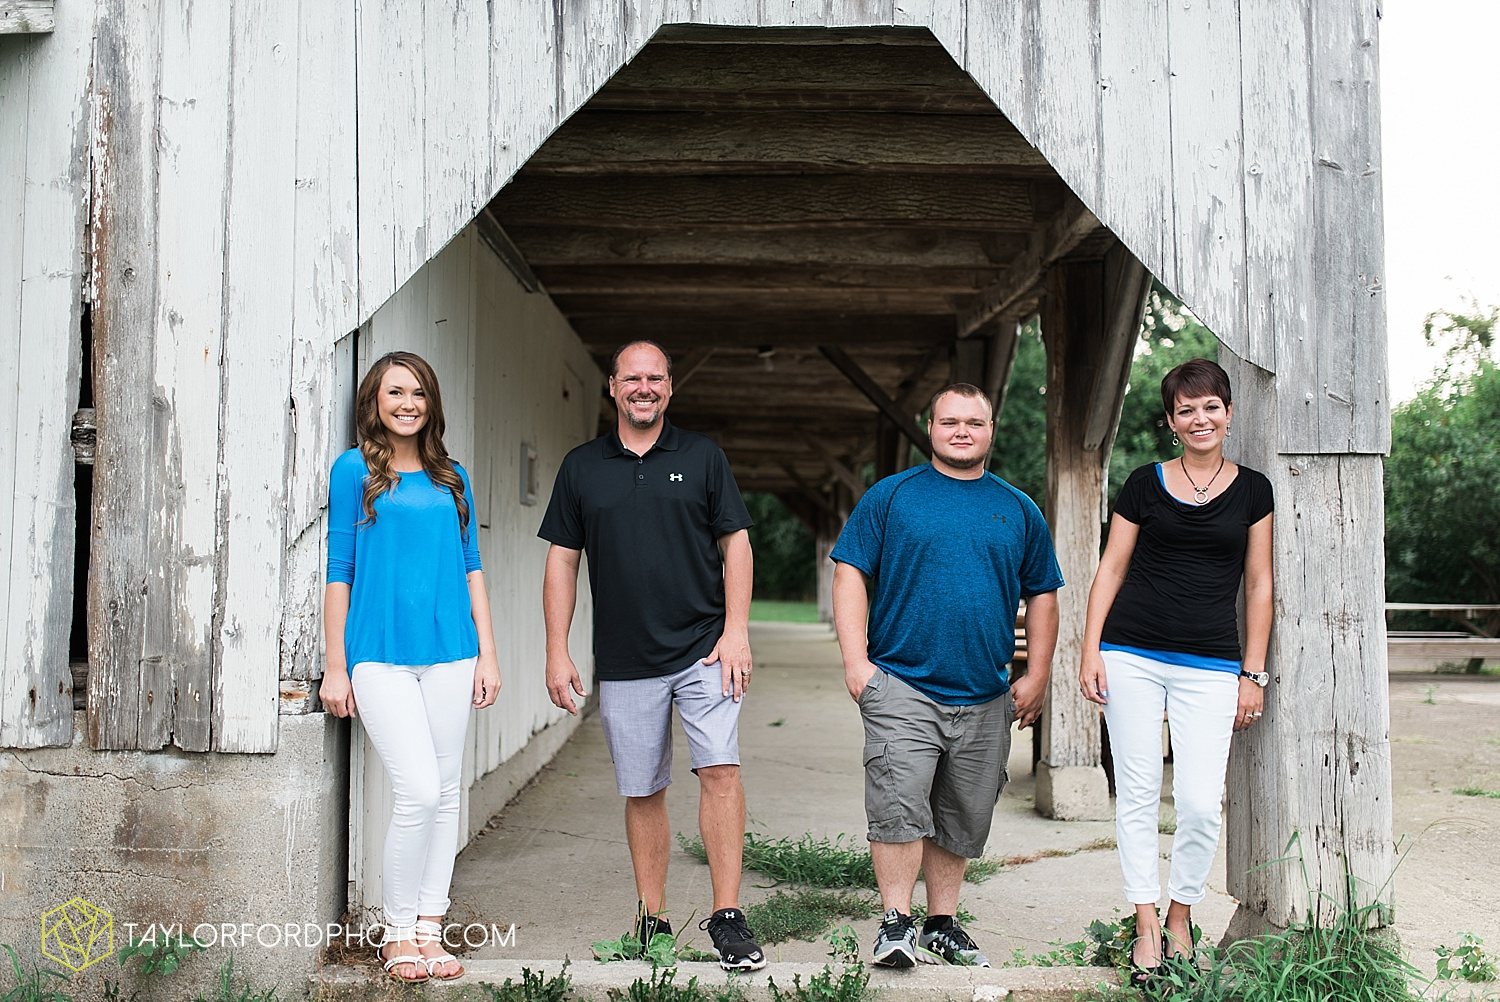 fort_wayne_indiana_family_photographer_taylor_ford_bryan_ohio_family_photographer_0361.jpg